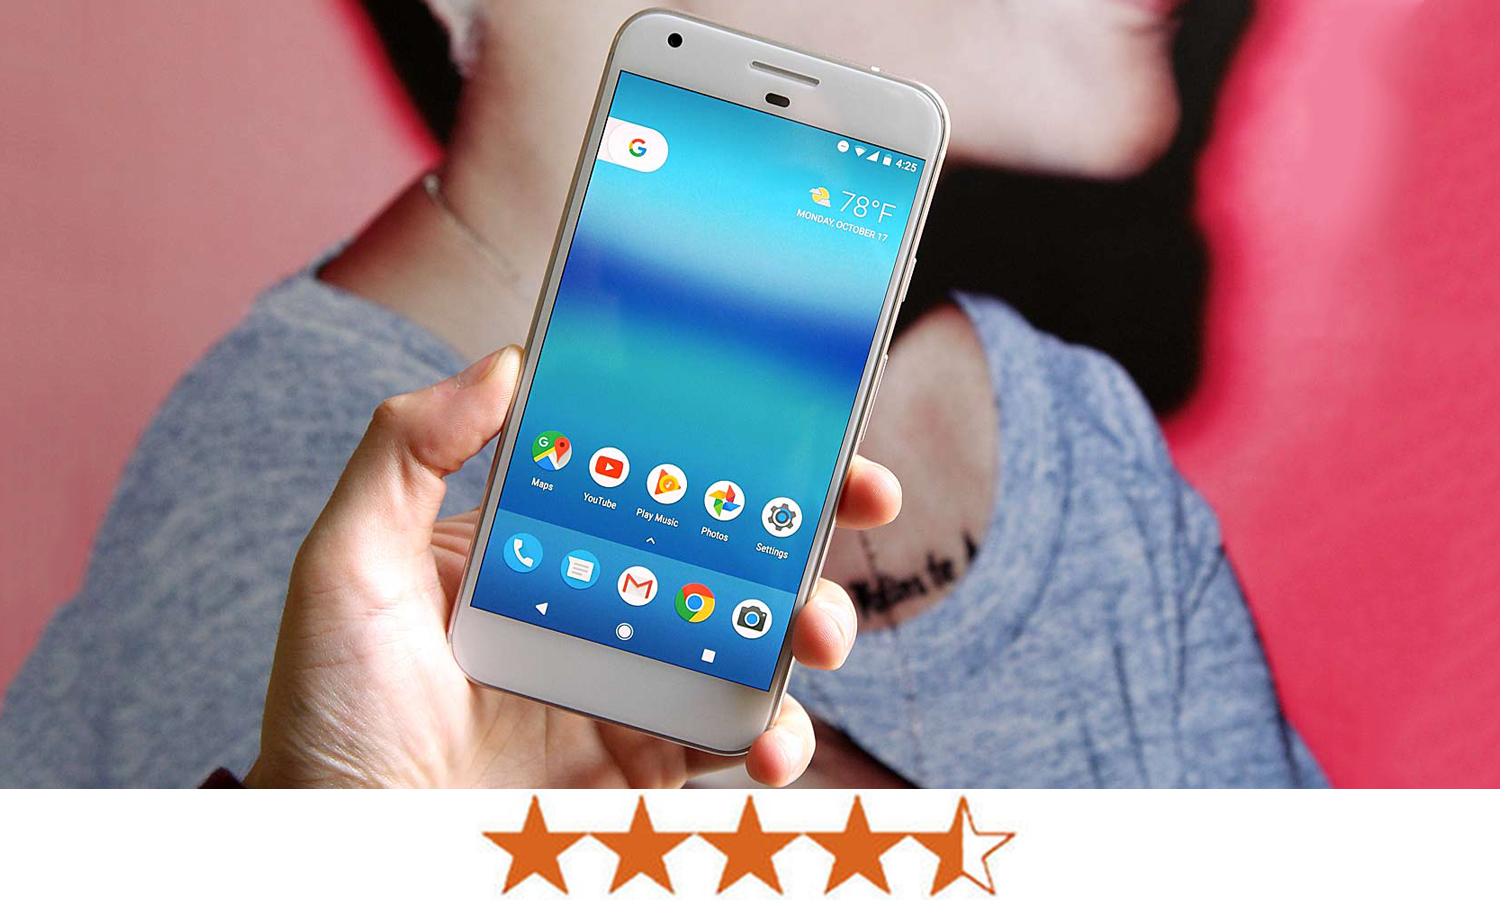 Google Pixel XL Review: Is It Good for Business?